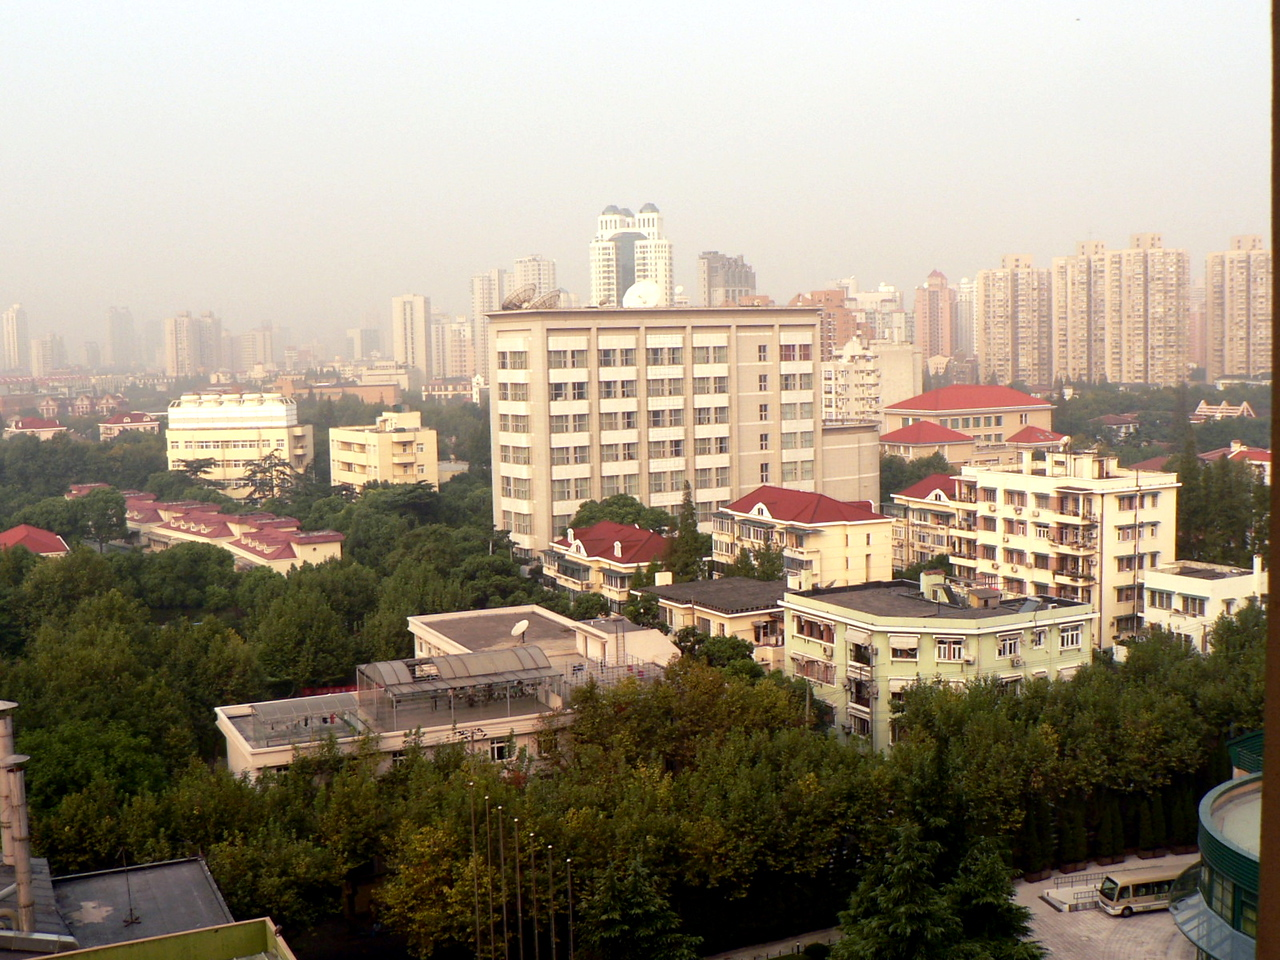 Shanghai...the view from our hotel, the Regal International East Asia Hotel.  Haze or smog...you decide.